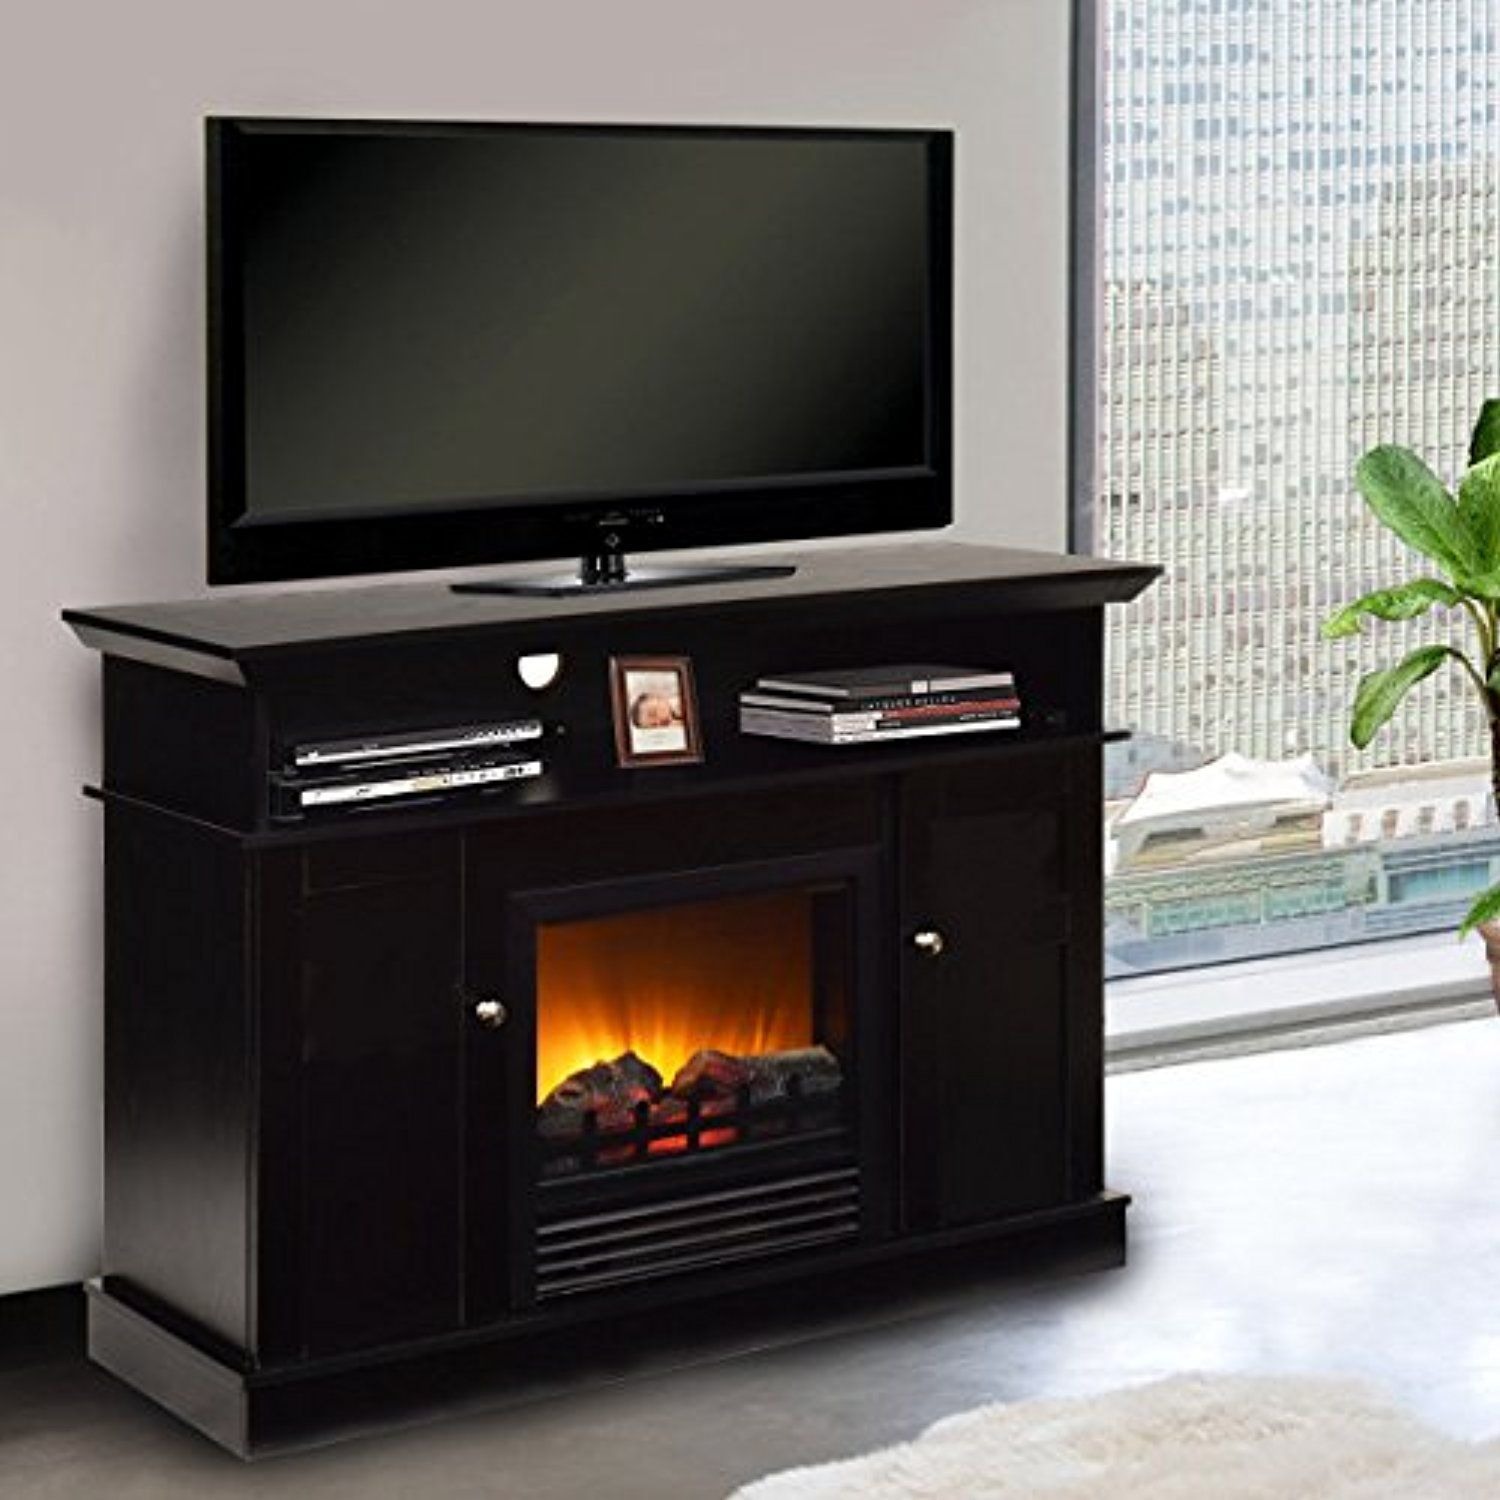 tangkula fireplace tv stand 42a home living room wooden media tv